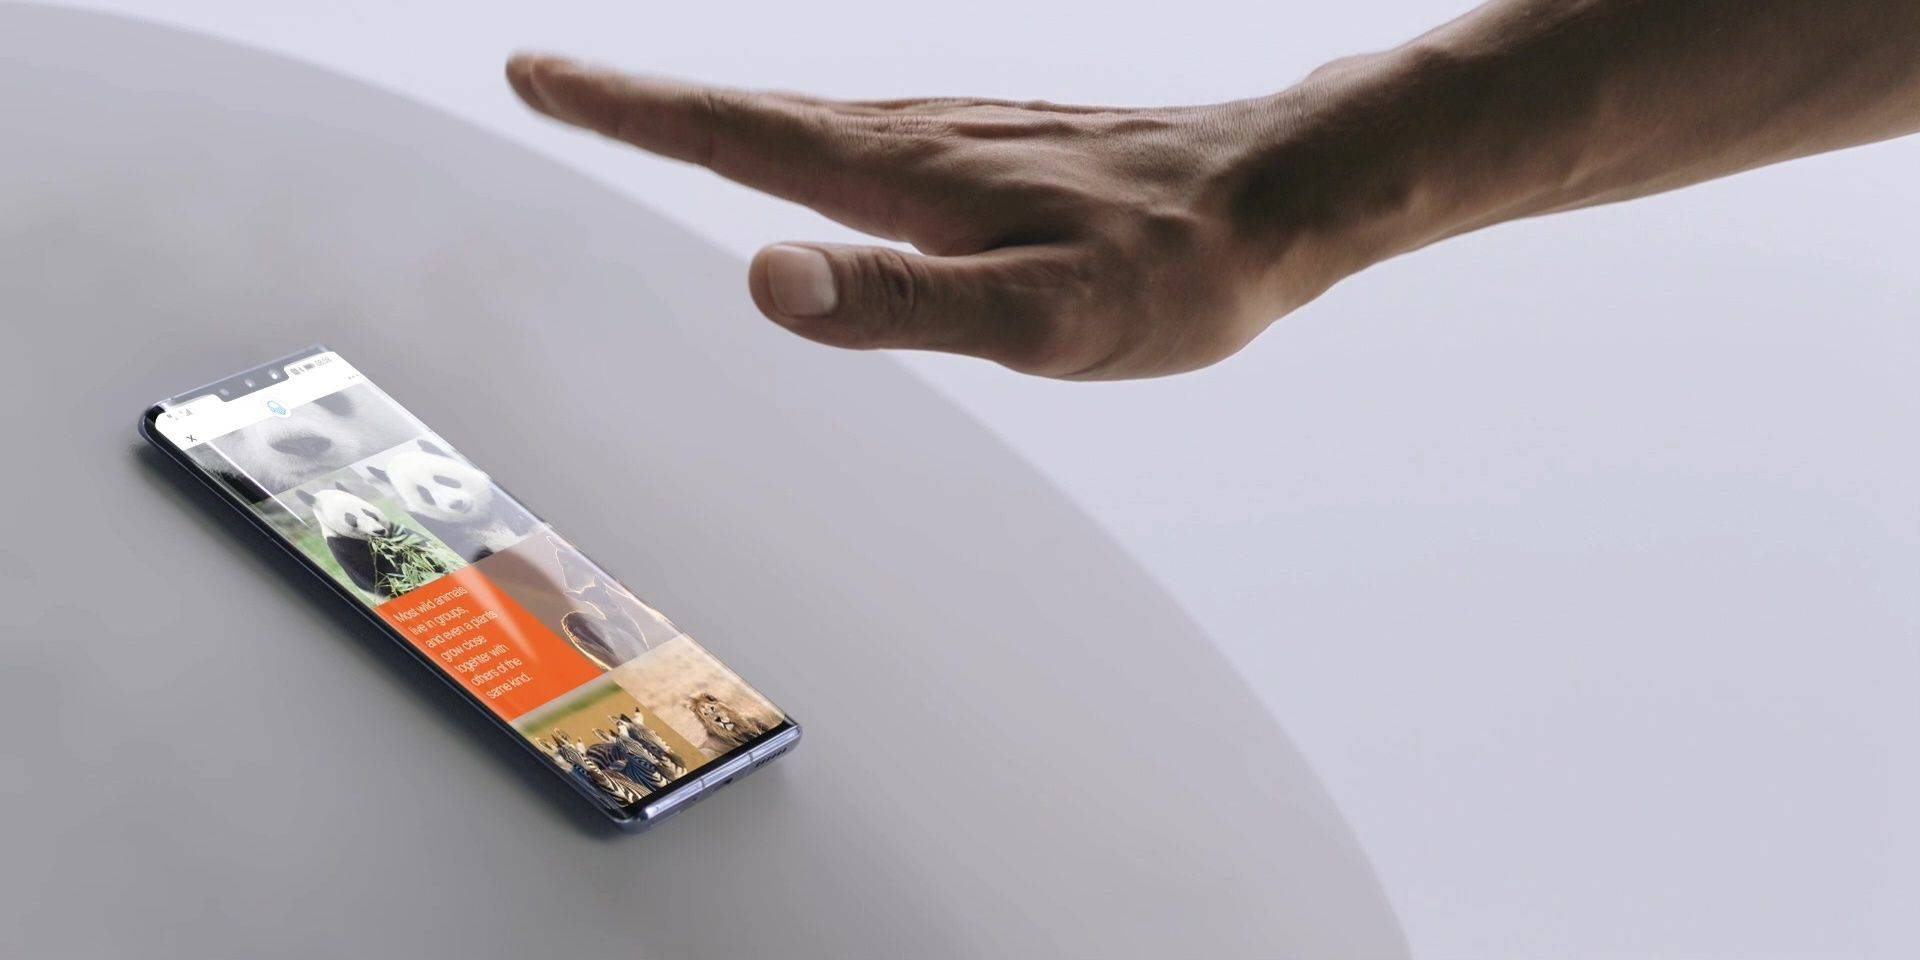 There are more ways to interact with the Mate 30 using gestures.